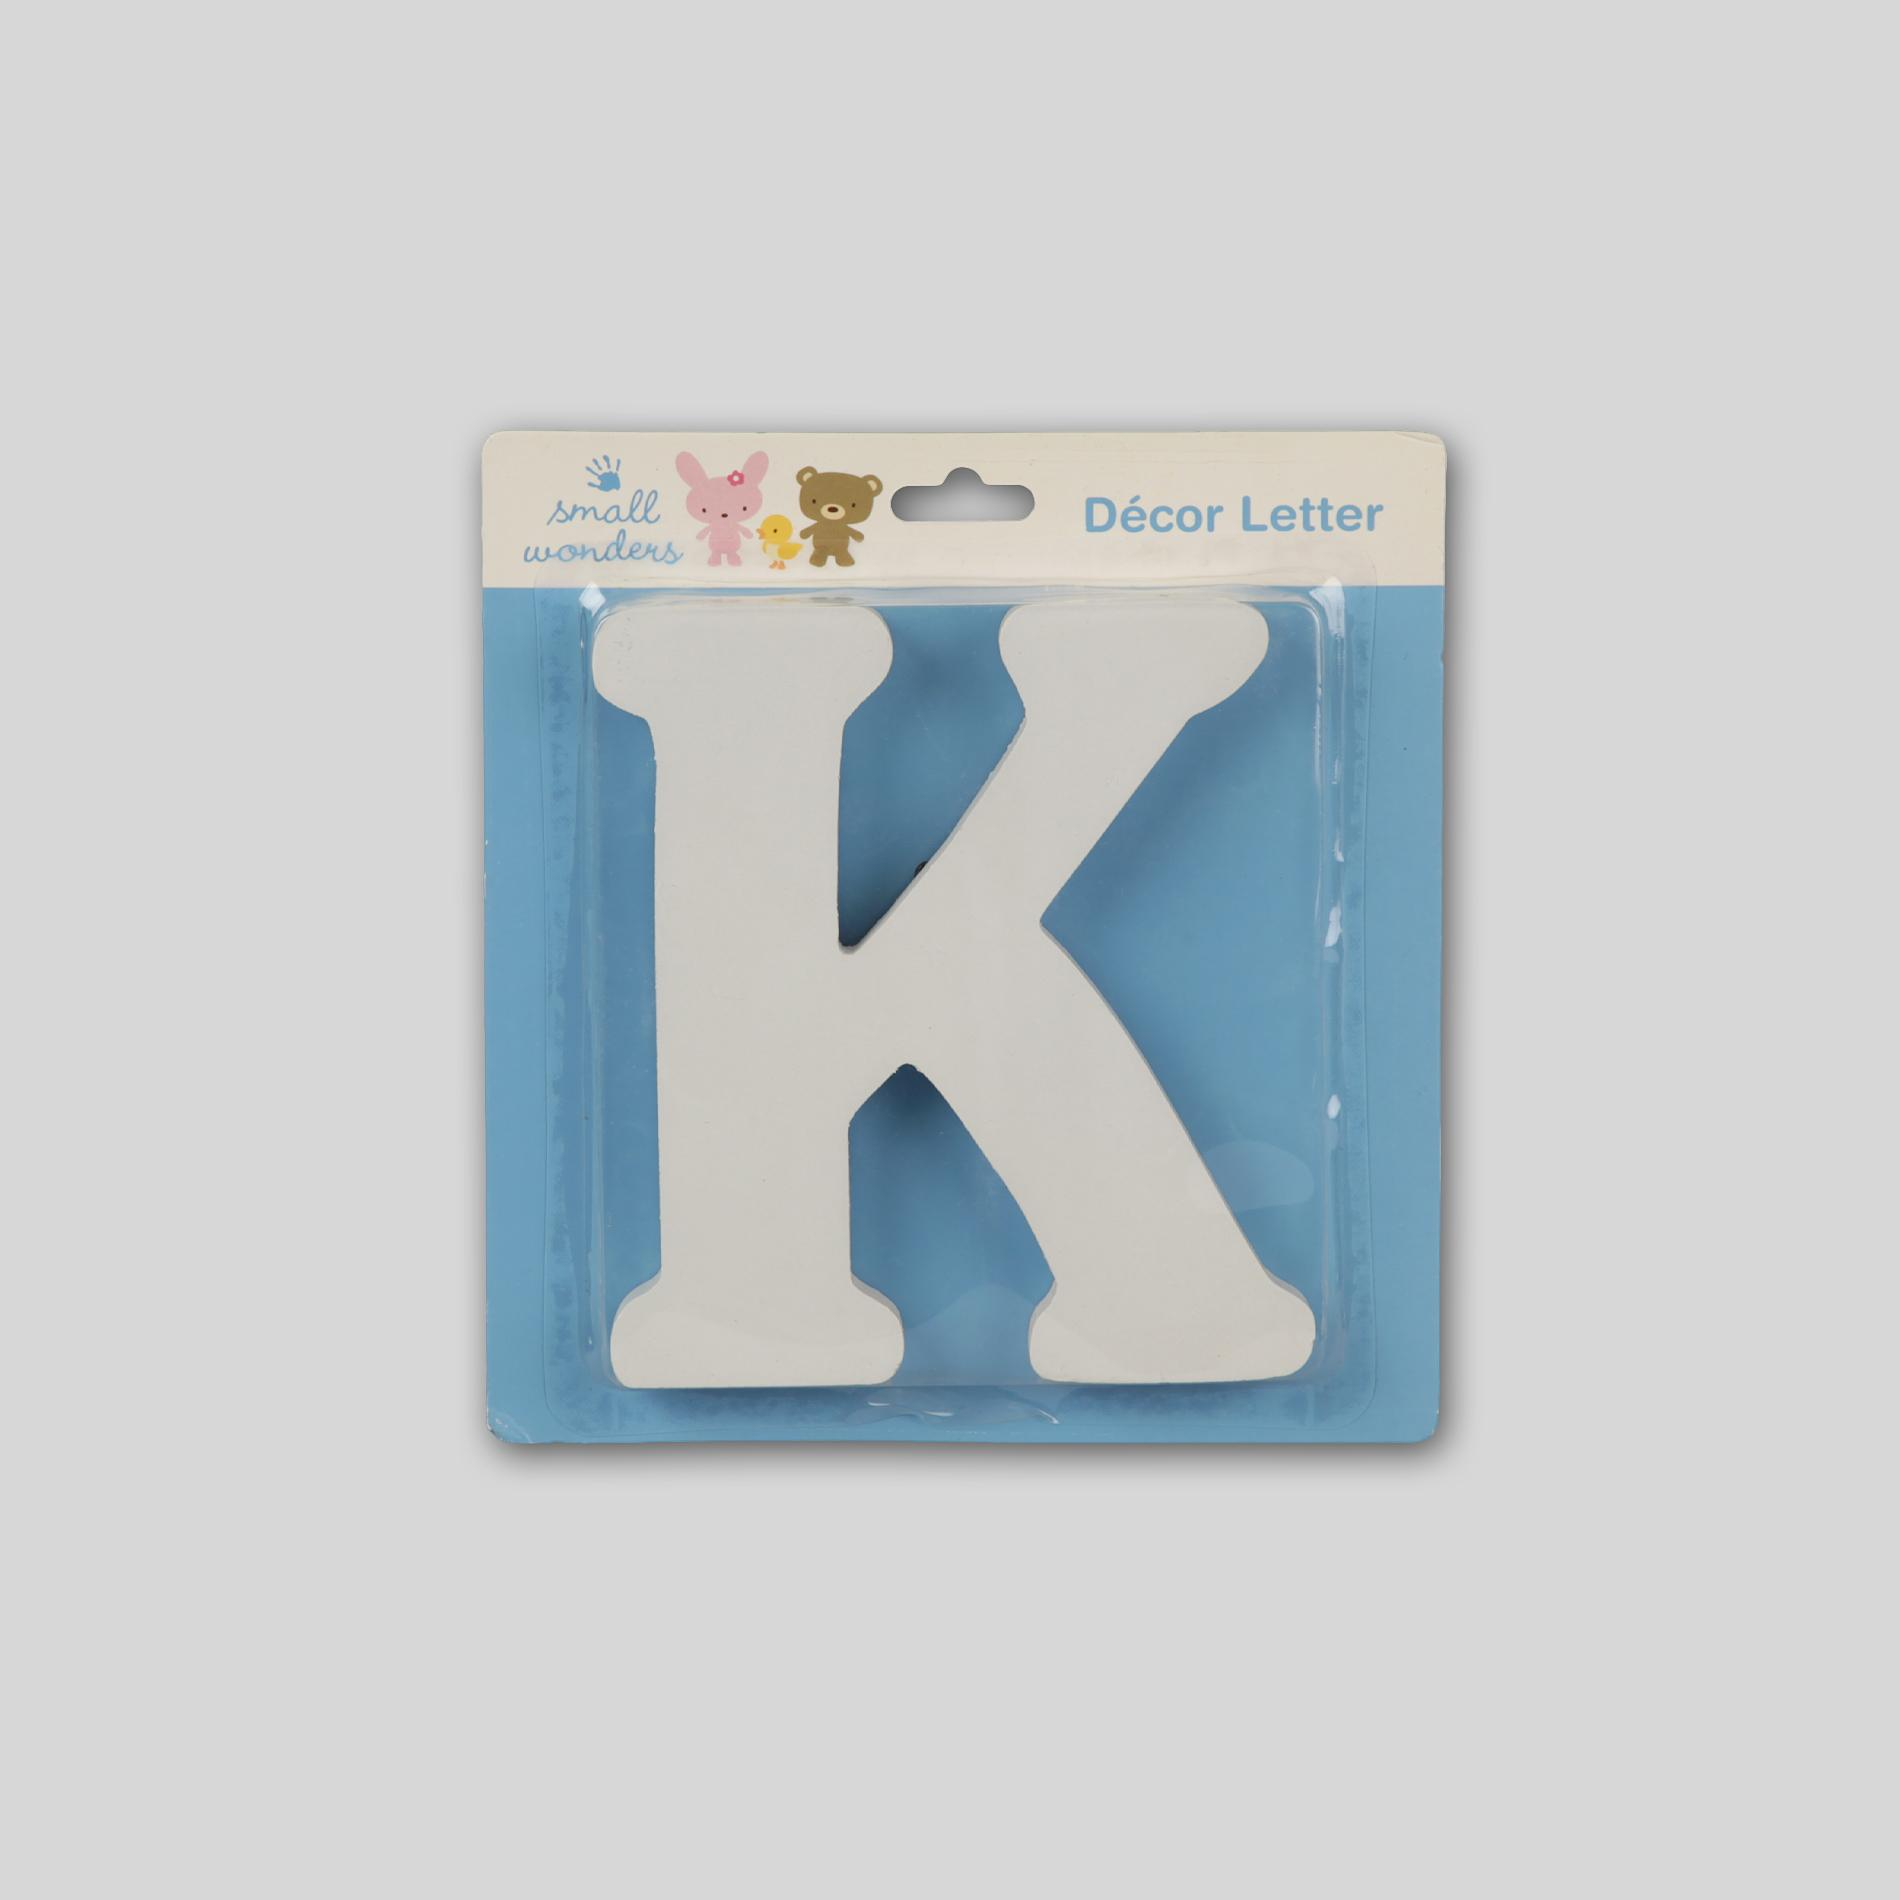 Small Wonders Wooden Letter Wall Decor - Letter K